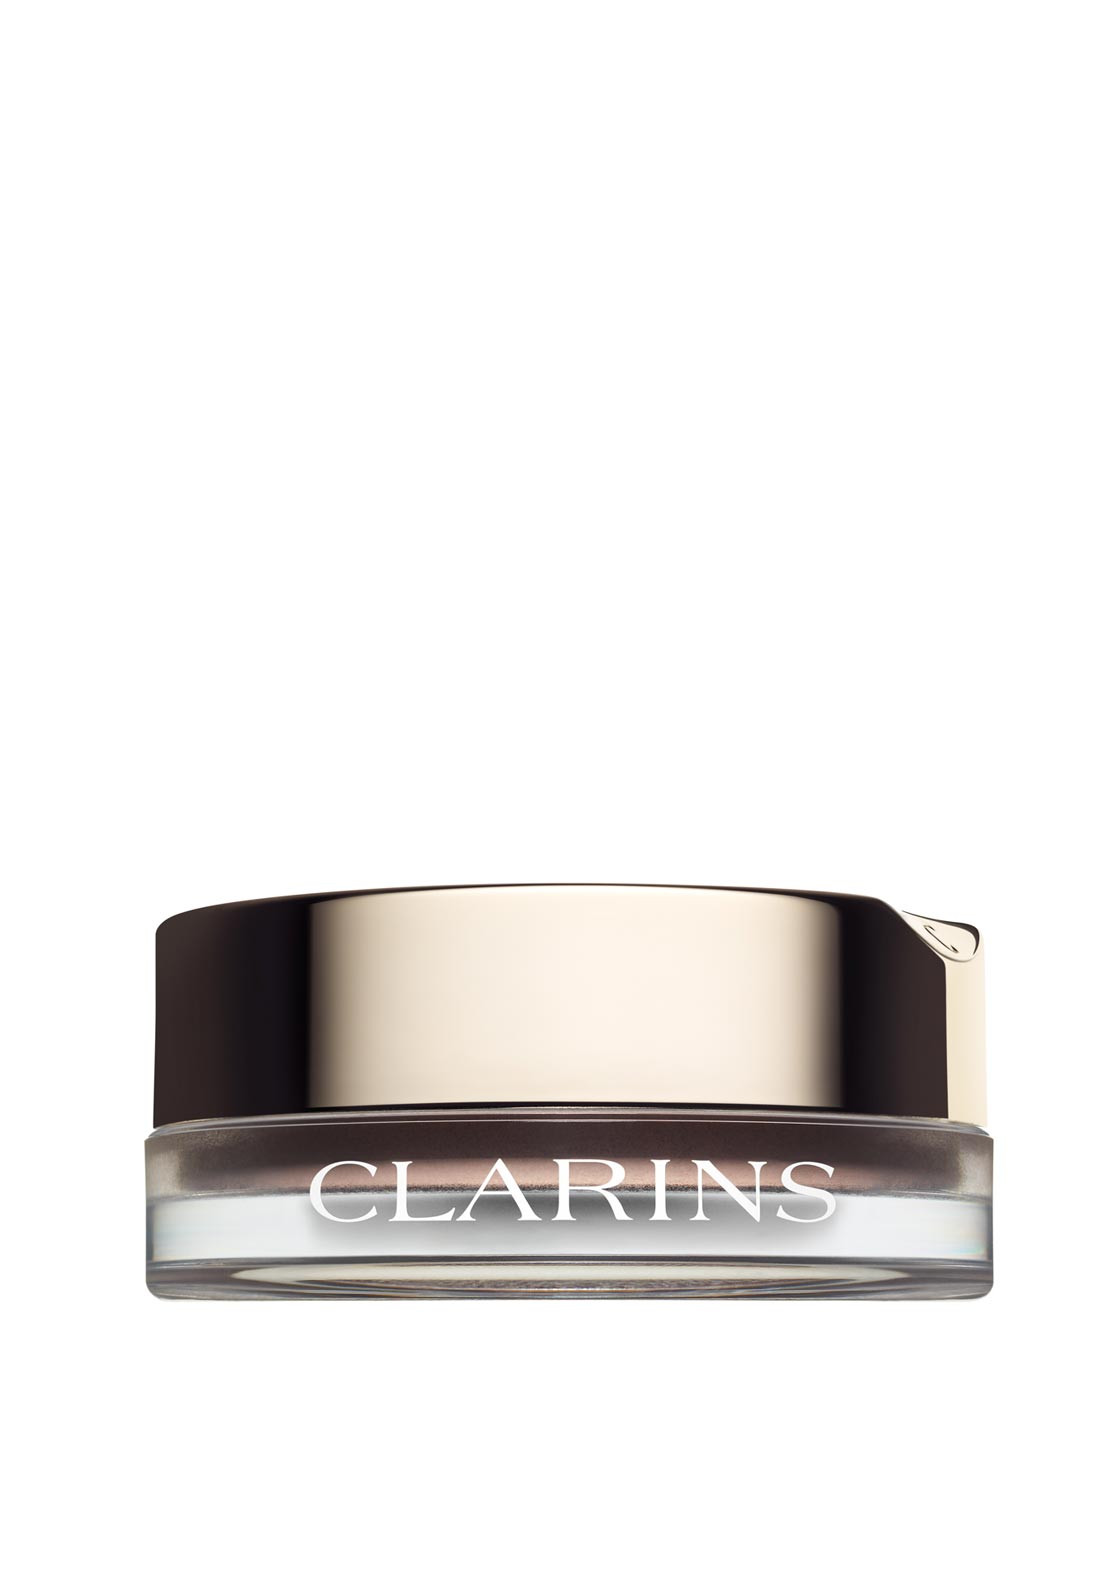 Clarins Cream-to-Powder Matte Eyeshadow, 02 Nude Pink